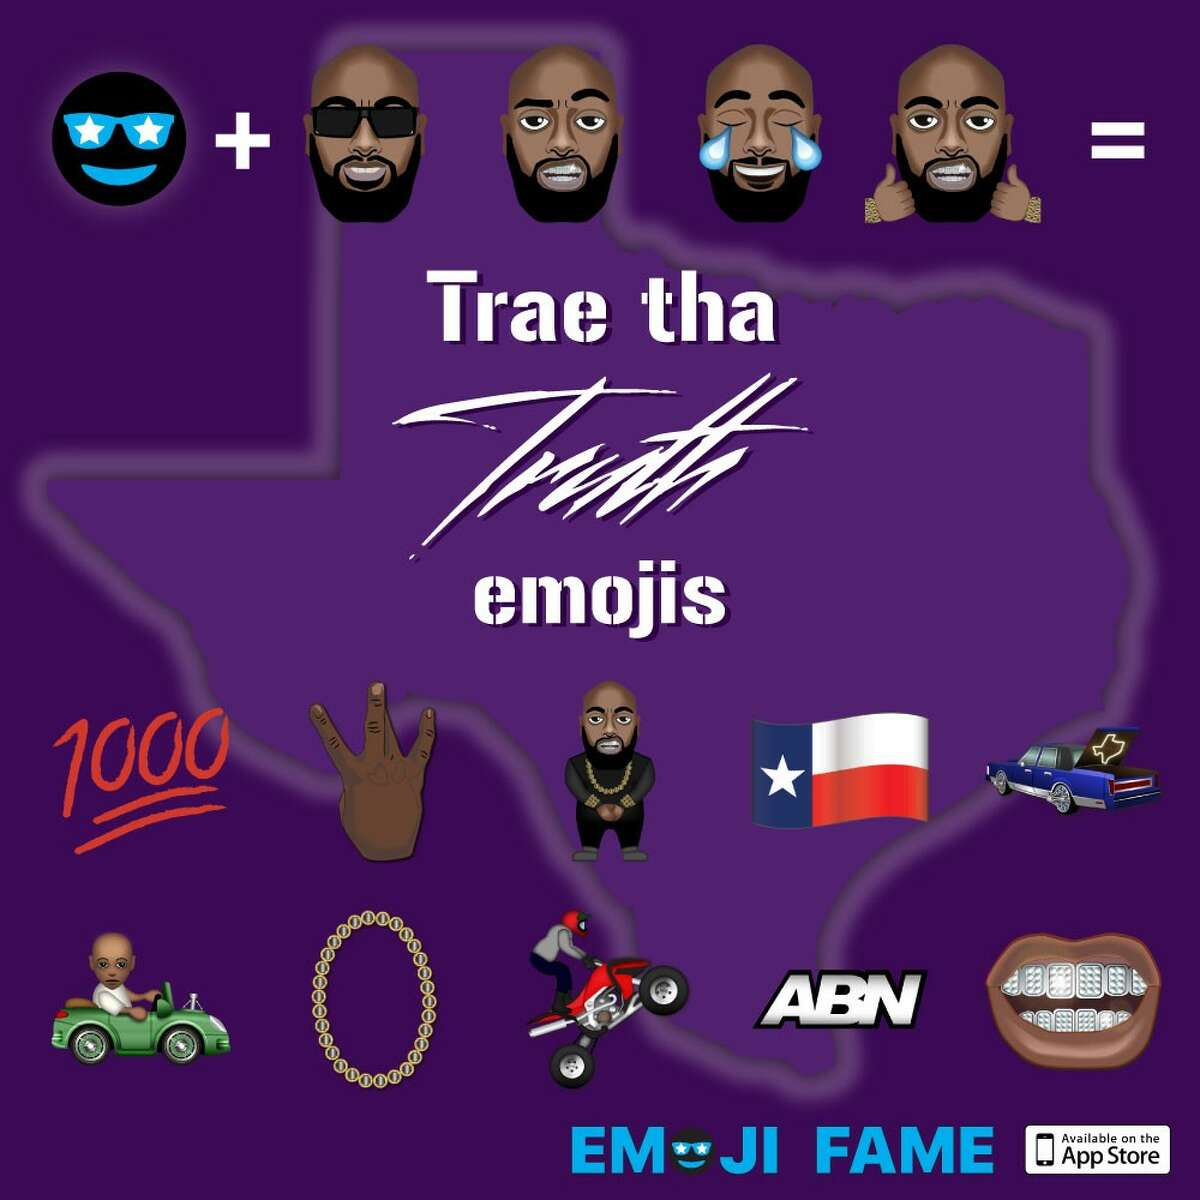 Houston rapper Trae Tha Truth is immortalized in a set of emojis that reflect him and Houston's hip-hop culture.